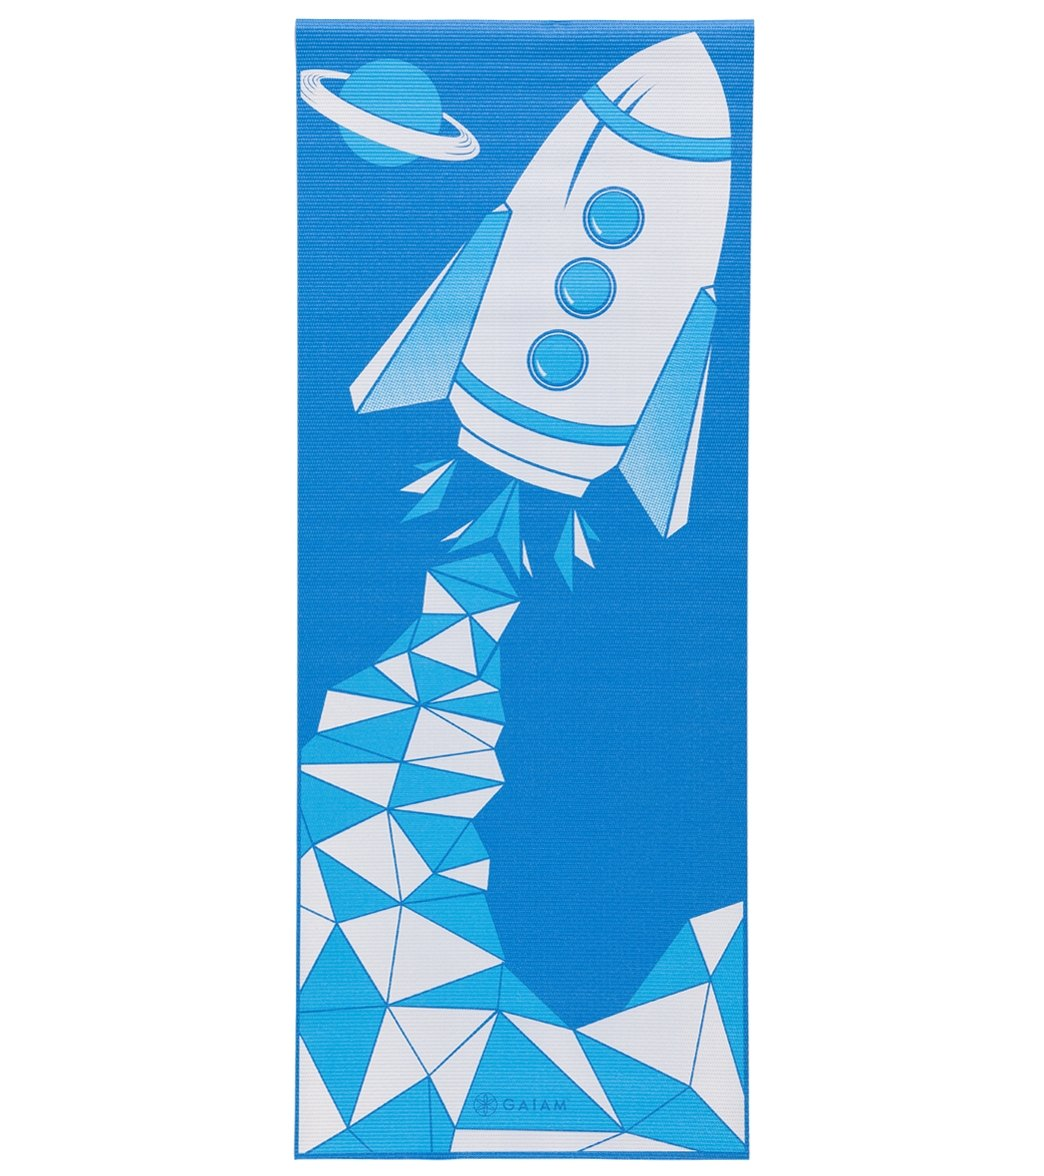 Gaiam Kids Yoga Mat Blue Rocket At Swimoutlet Com